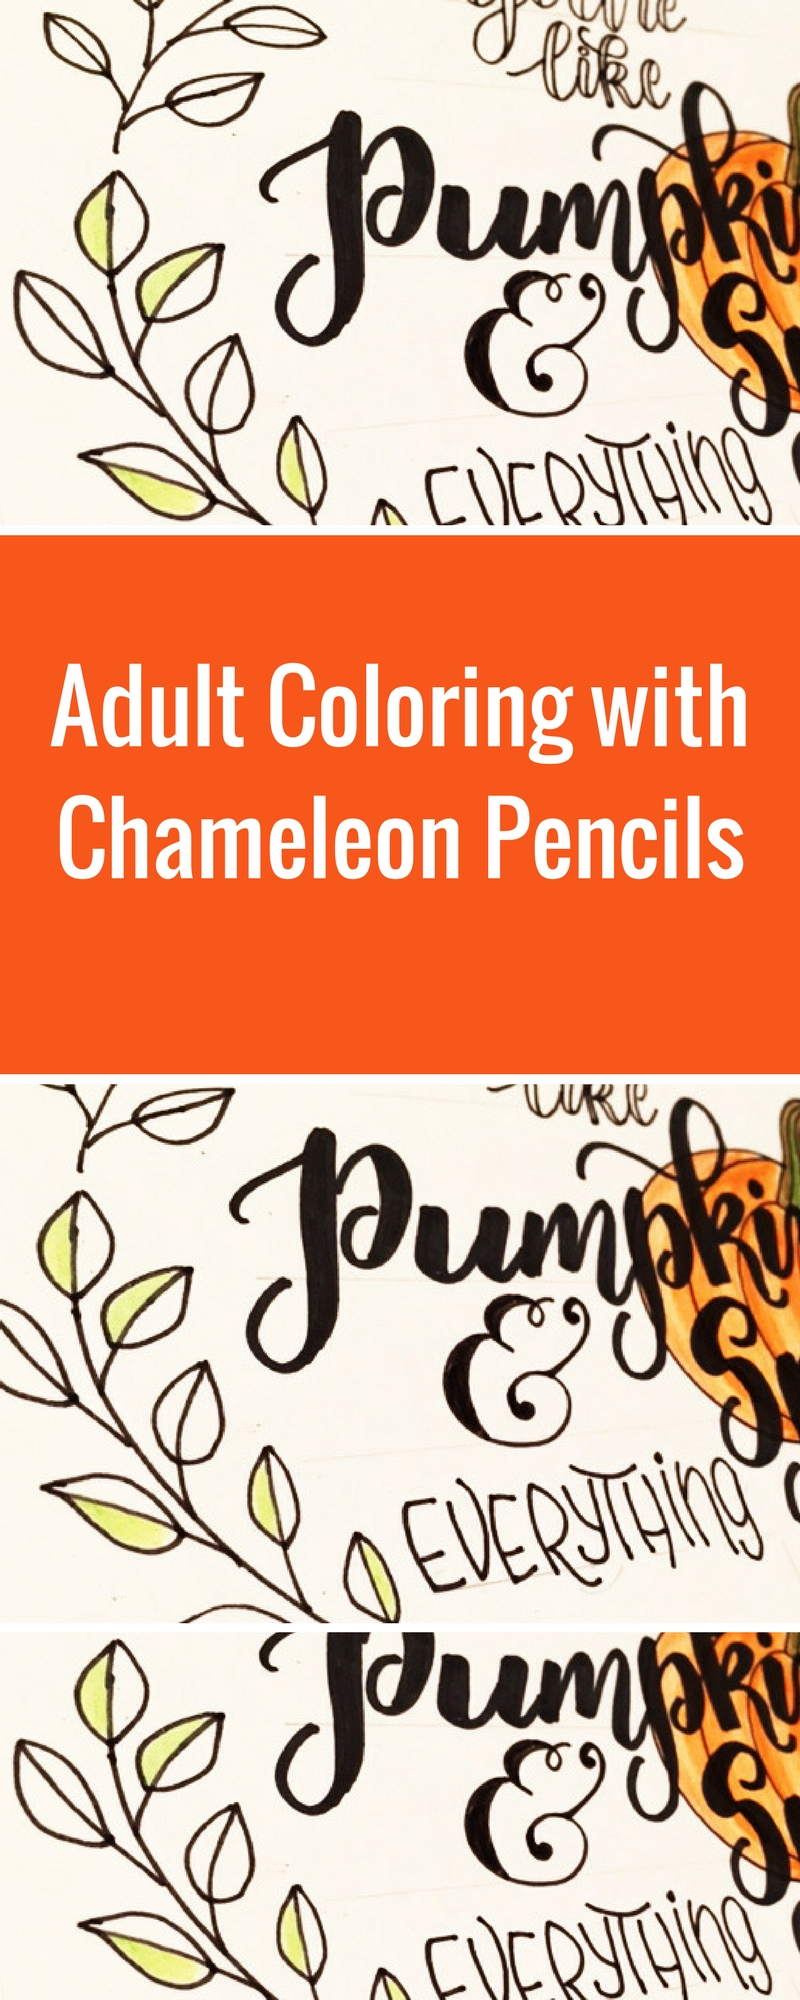 Adult Coloring | Fall Home Decor | Hand Lettering | Featuring Chameleon Pencils | Designed by Kelly Klapstein | Creative Scrapbooker Magazine #coloring #fall #homedecor